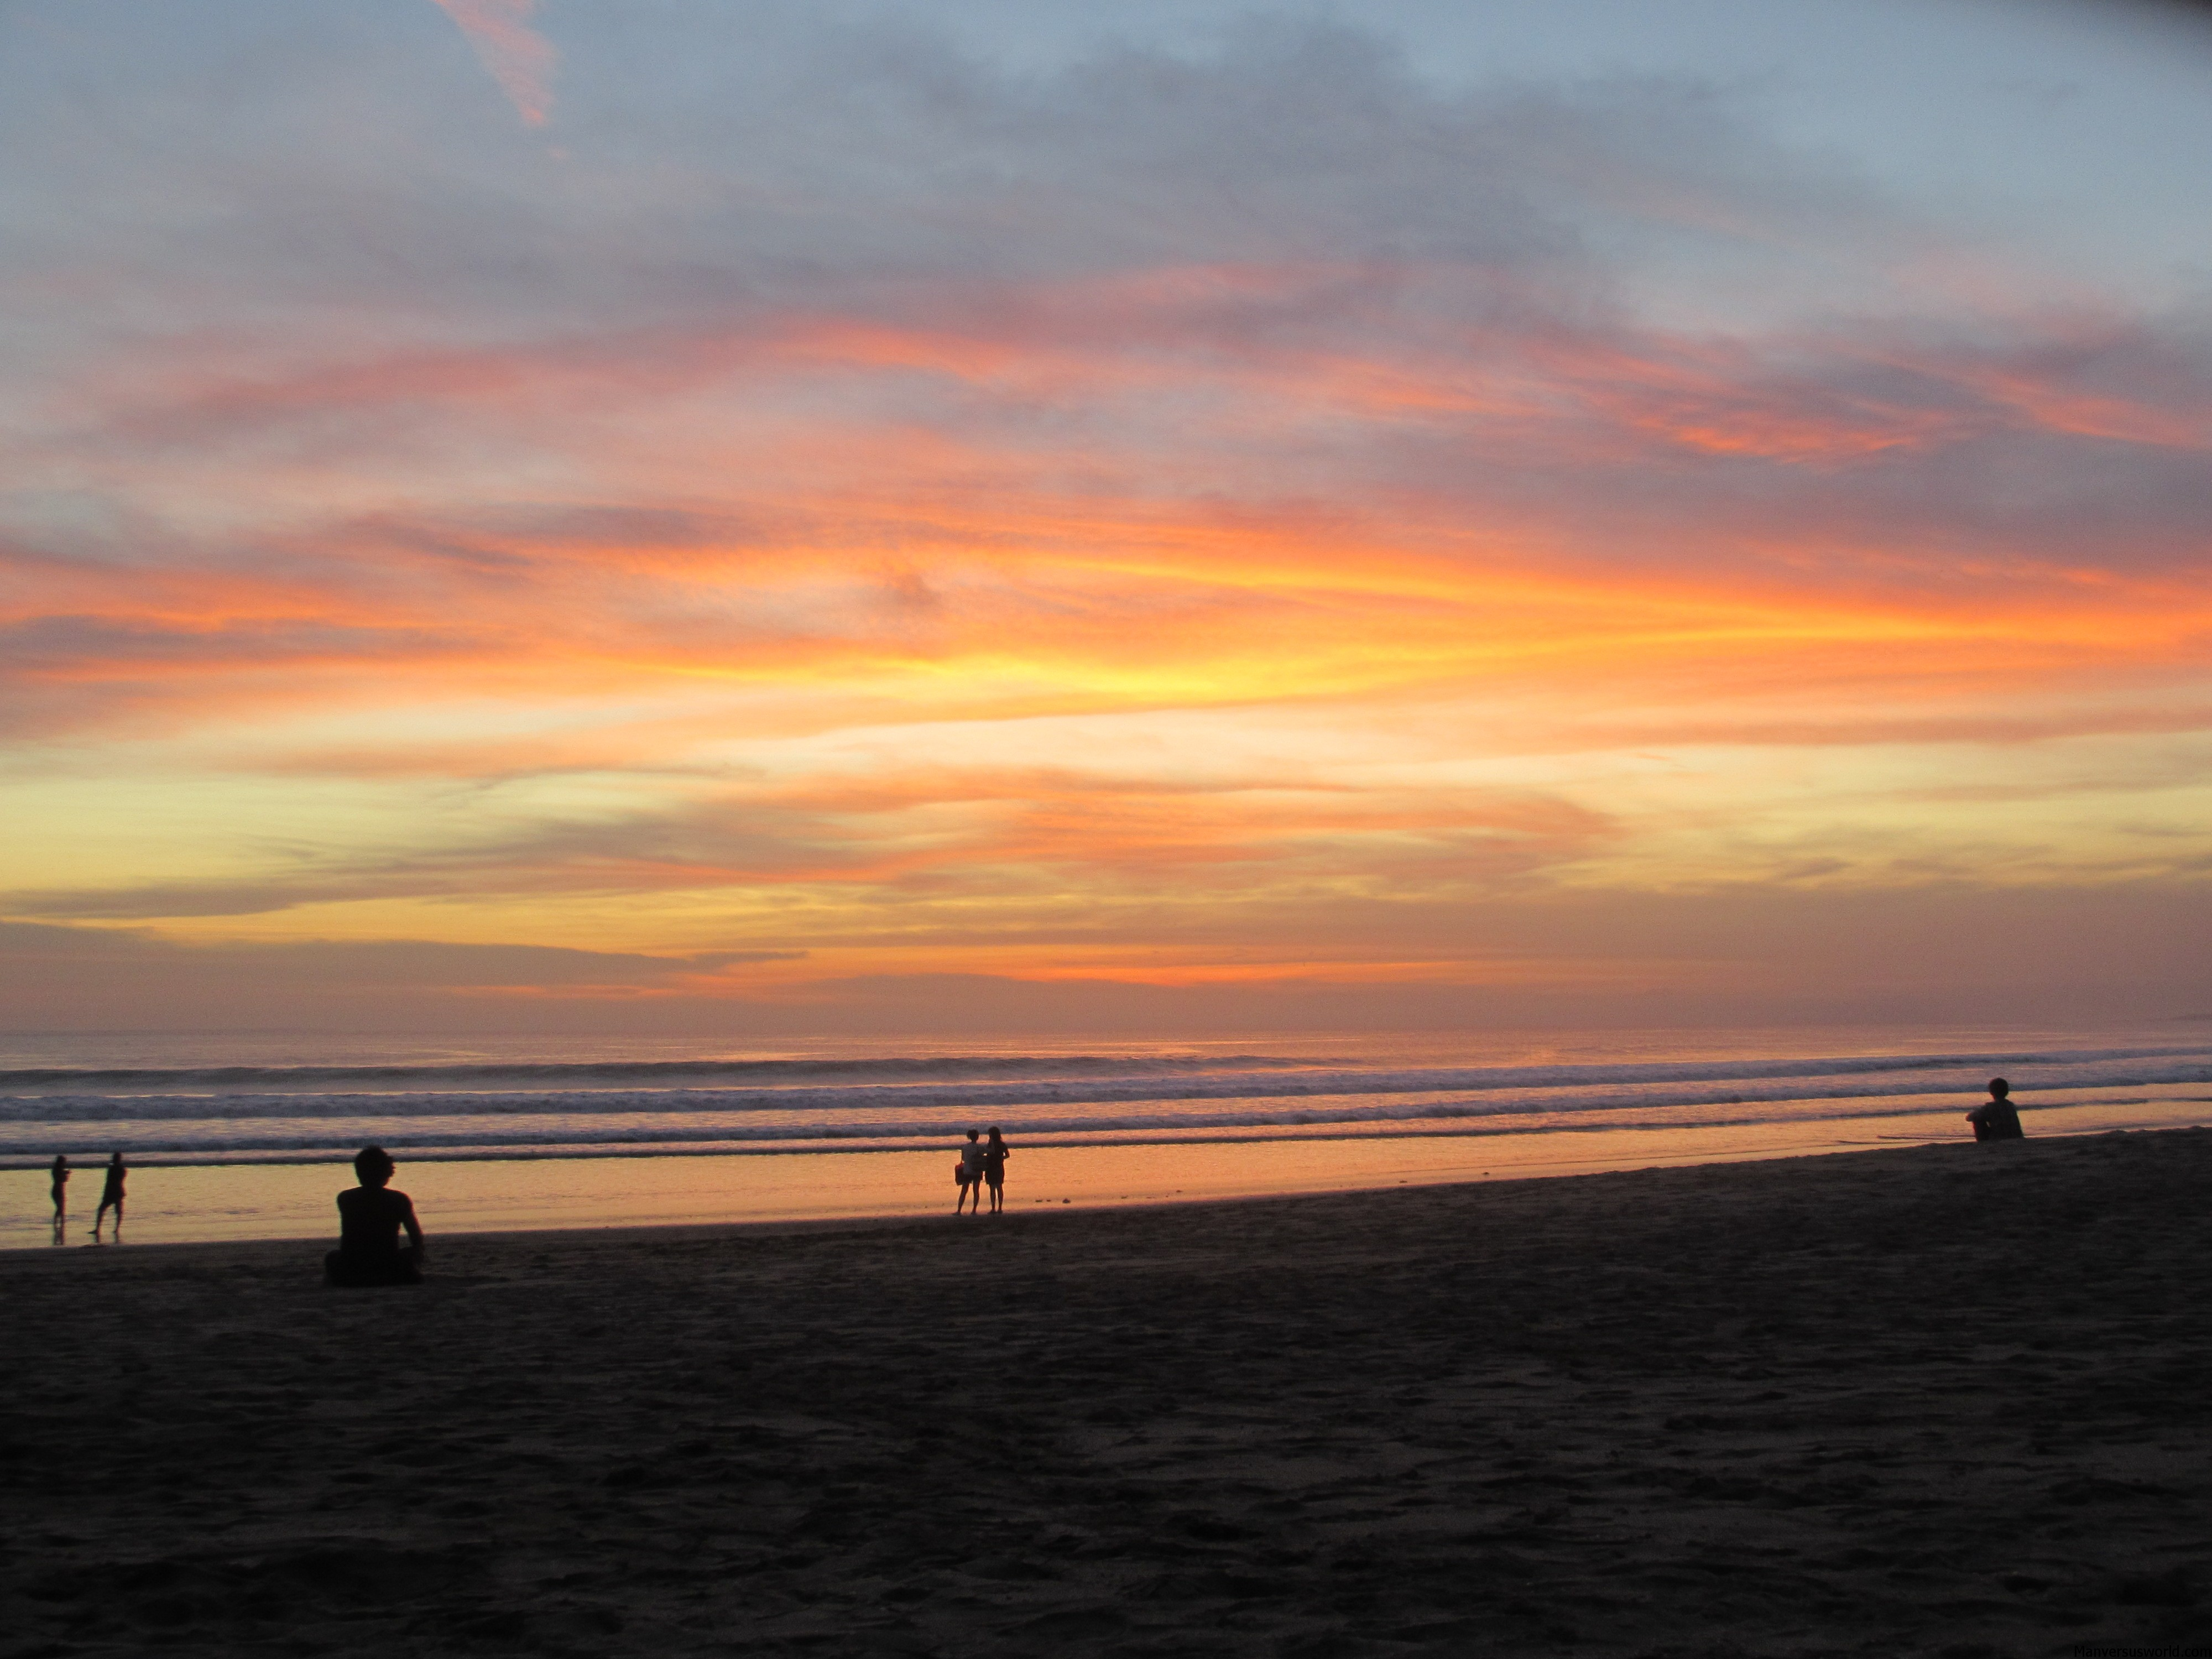 I got engaged iat sunset on Kuta Beach, Bali